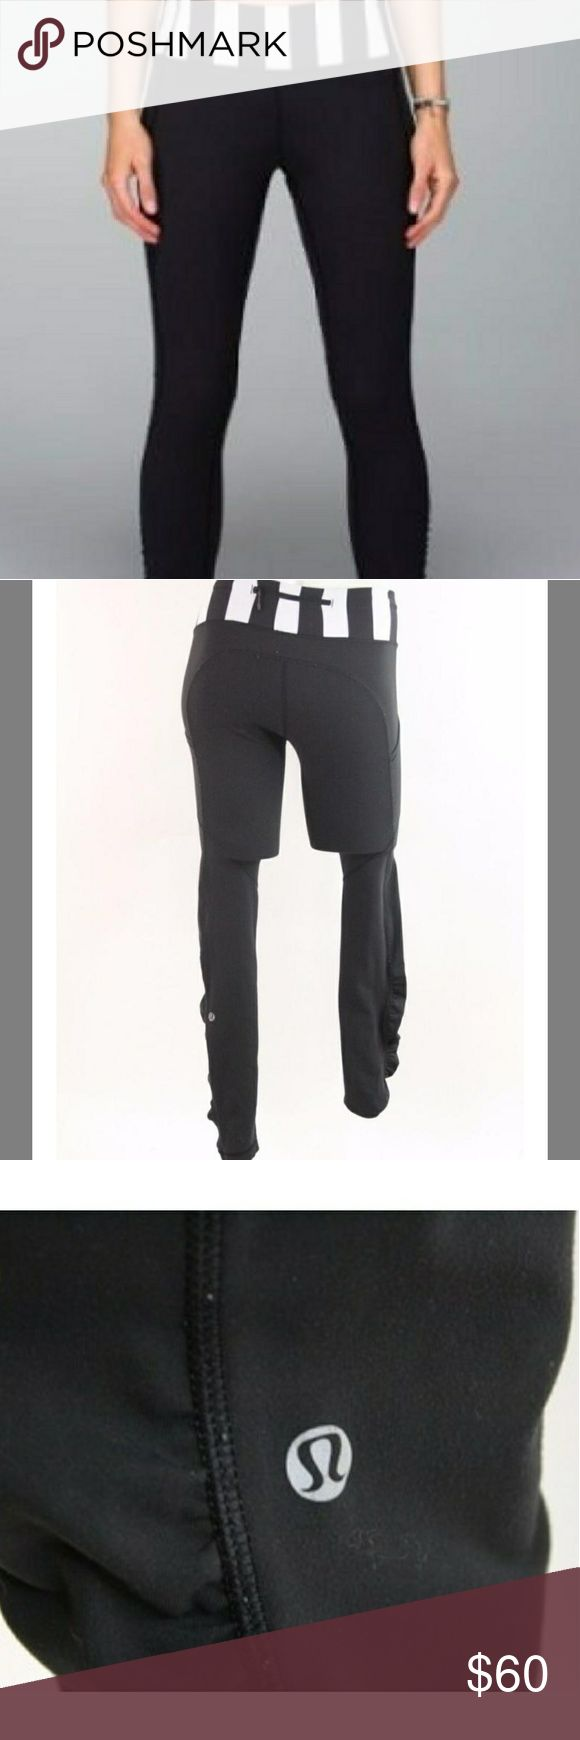 """Lululemon Speed Tight Brushed Interlock Run Pants Lululemon Speed Tight Run Pants brushed Interlock Power Luxtreme fabric is cozy, wicks moisture and feels soft against your skin.  comfortable, medium-rise waistband lies flat and smooth to prevent muffin top continuous draw-cord won't get lost in the wash. say no to chafing with flat seams  Fit + function:  Designed for: run fabric(s): Interlock Power Luxtreme fit: tight rise: medium inseam: 30"""" leg opening: 8 1/8"""" Condition: Excellent used…"""